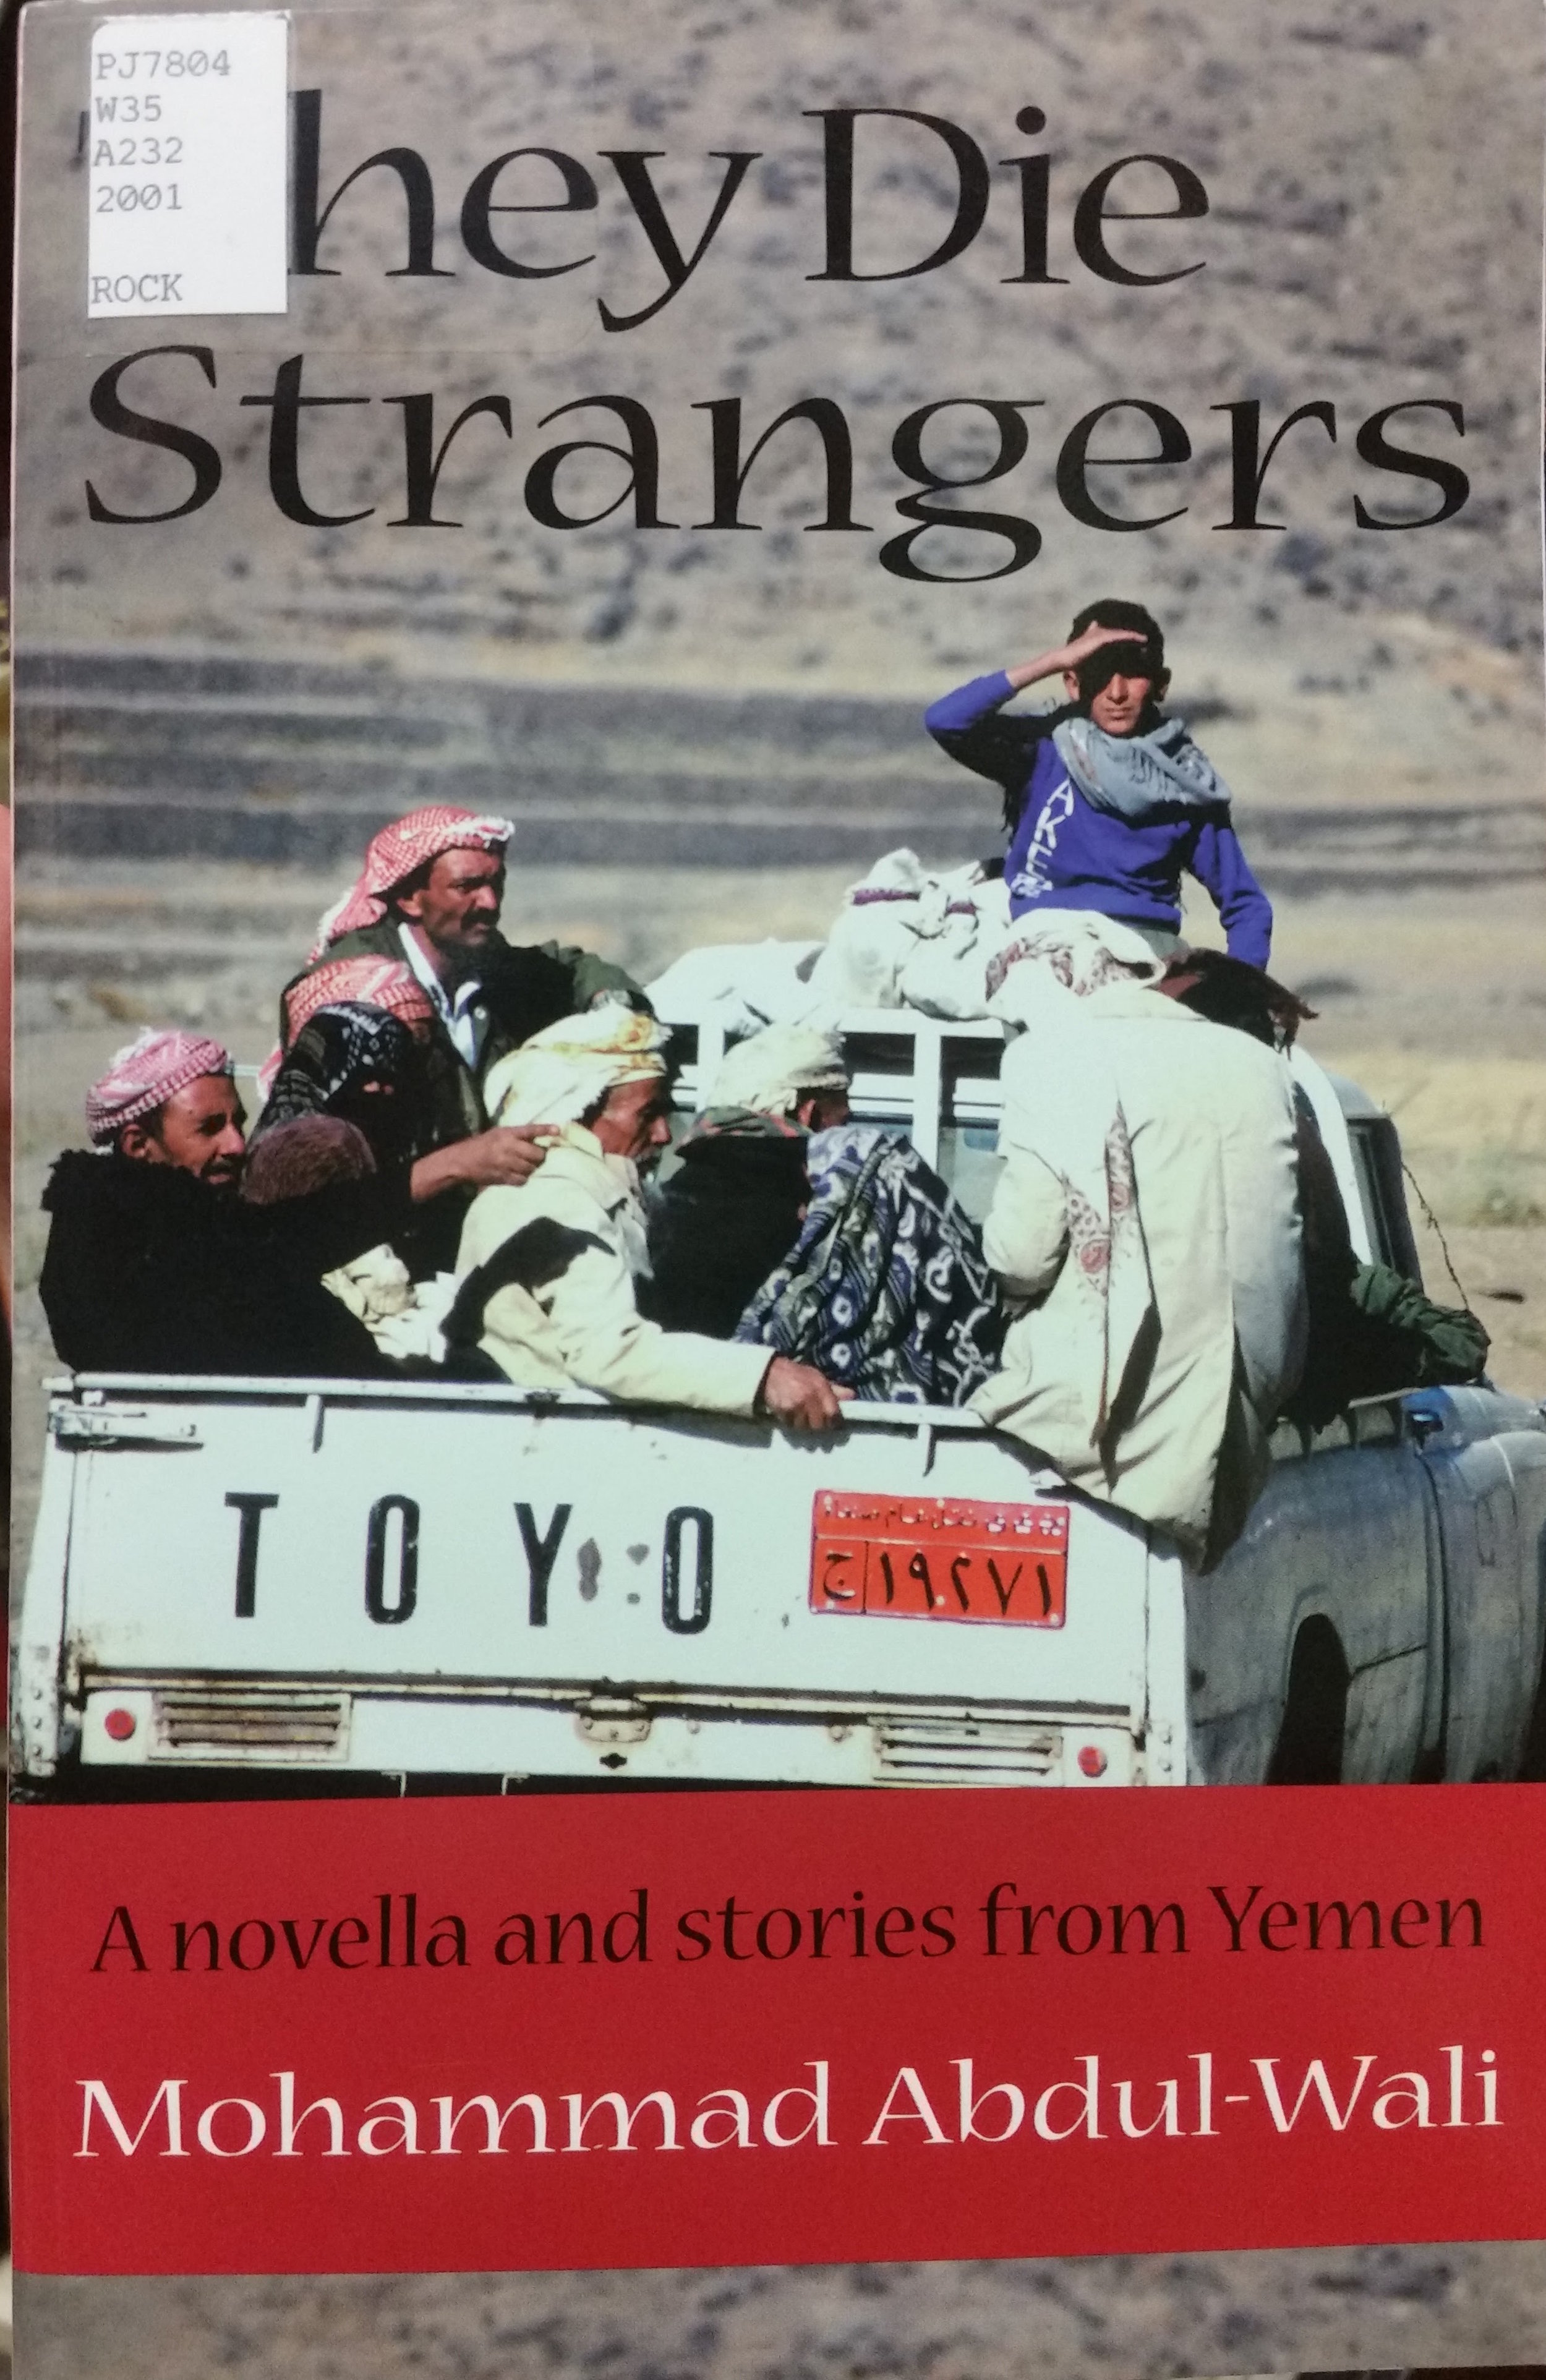 Mohammad Abdul-Wali, translated by Abubaker Bagader and Deborah Akers,introduction by Shelagh Weir (Austin : Center for Middle Eastern Studies, the University of Texas at Austin, 2001).